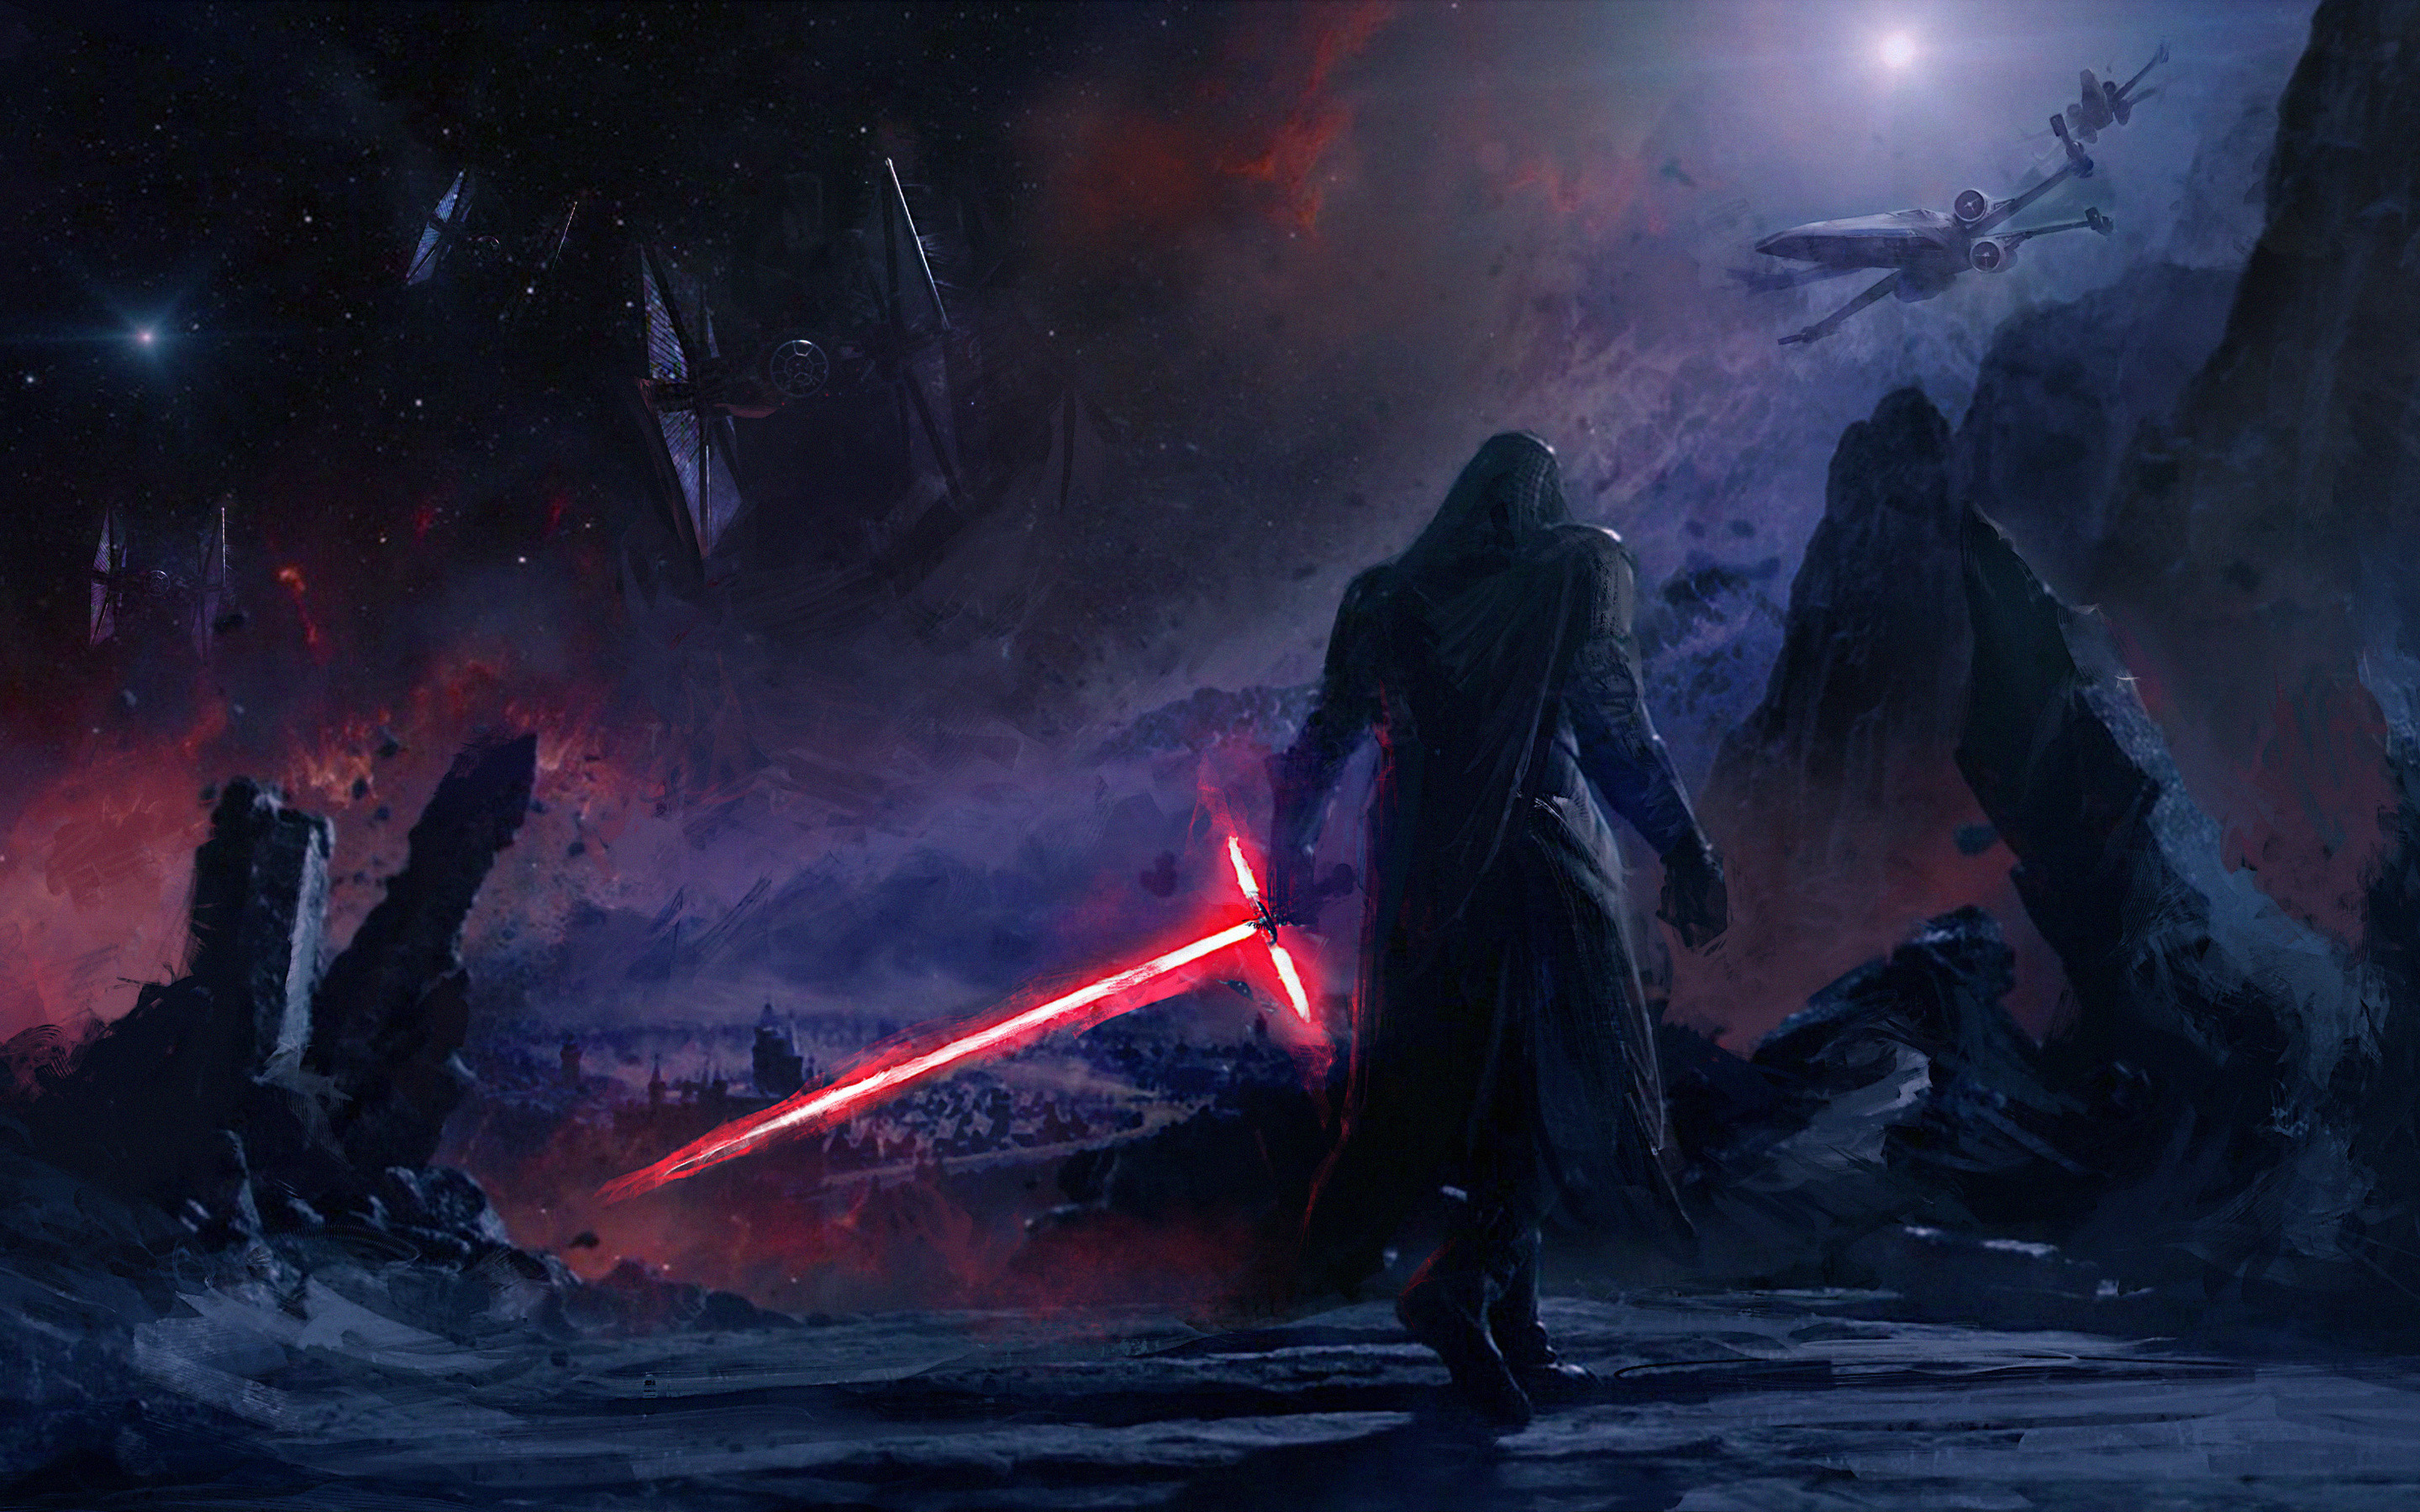 kylo ren star wars artwork 4k x7